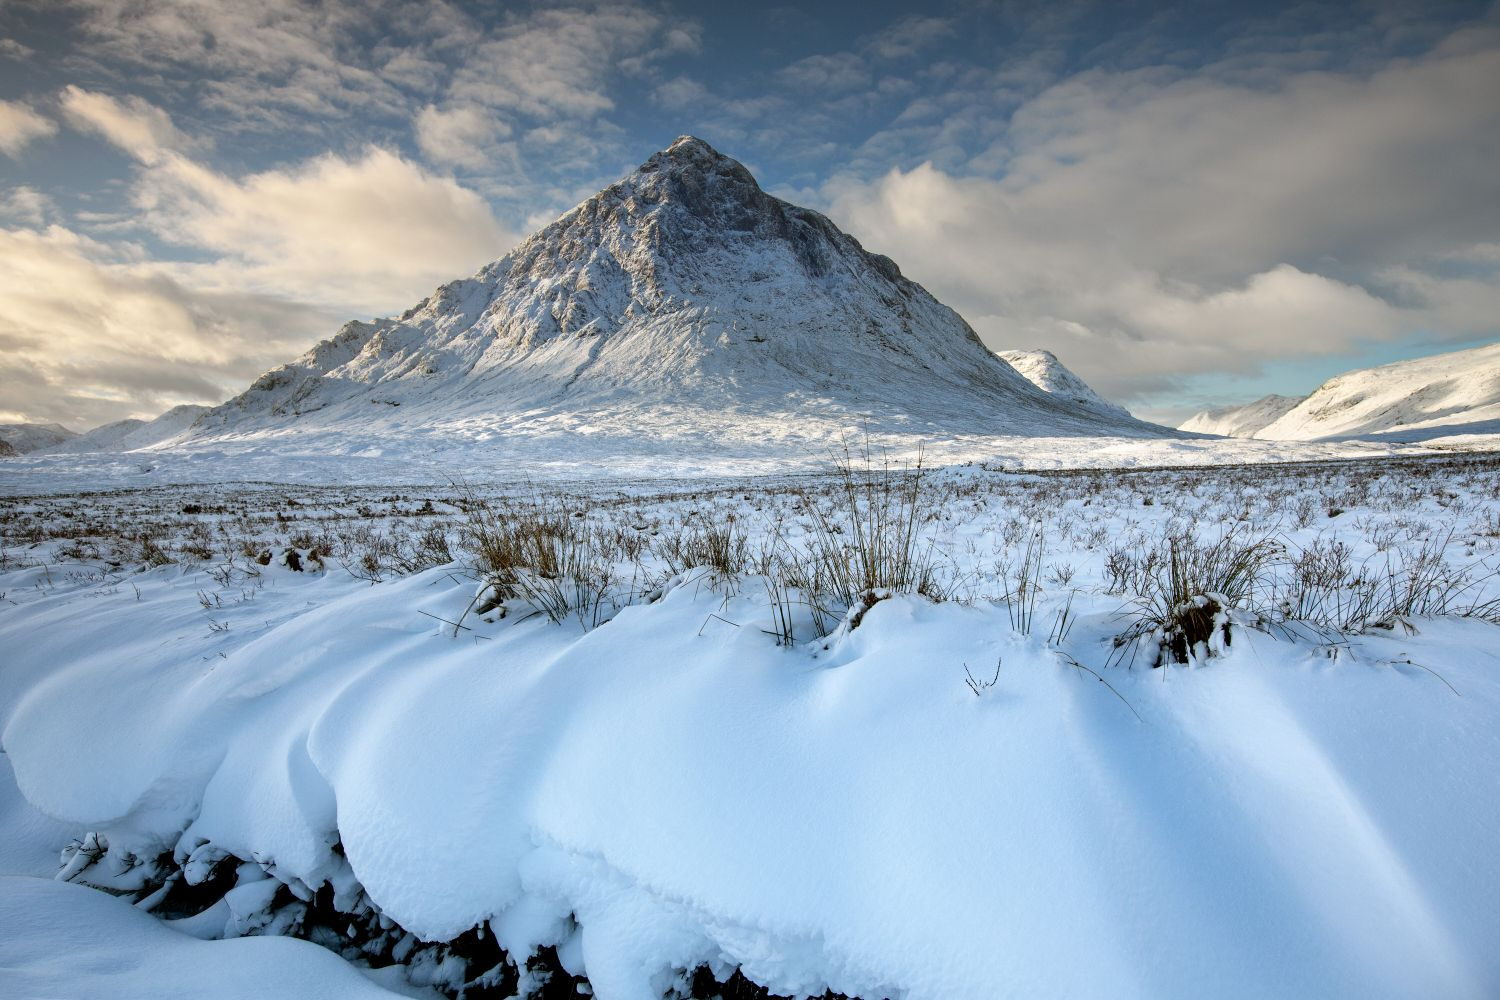 A classic winter shot of Buachille Etive Mor surrounded by snow along the River Coupall